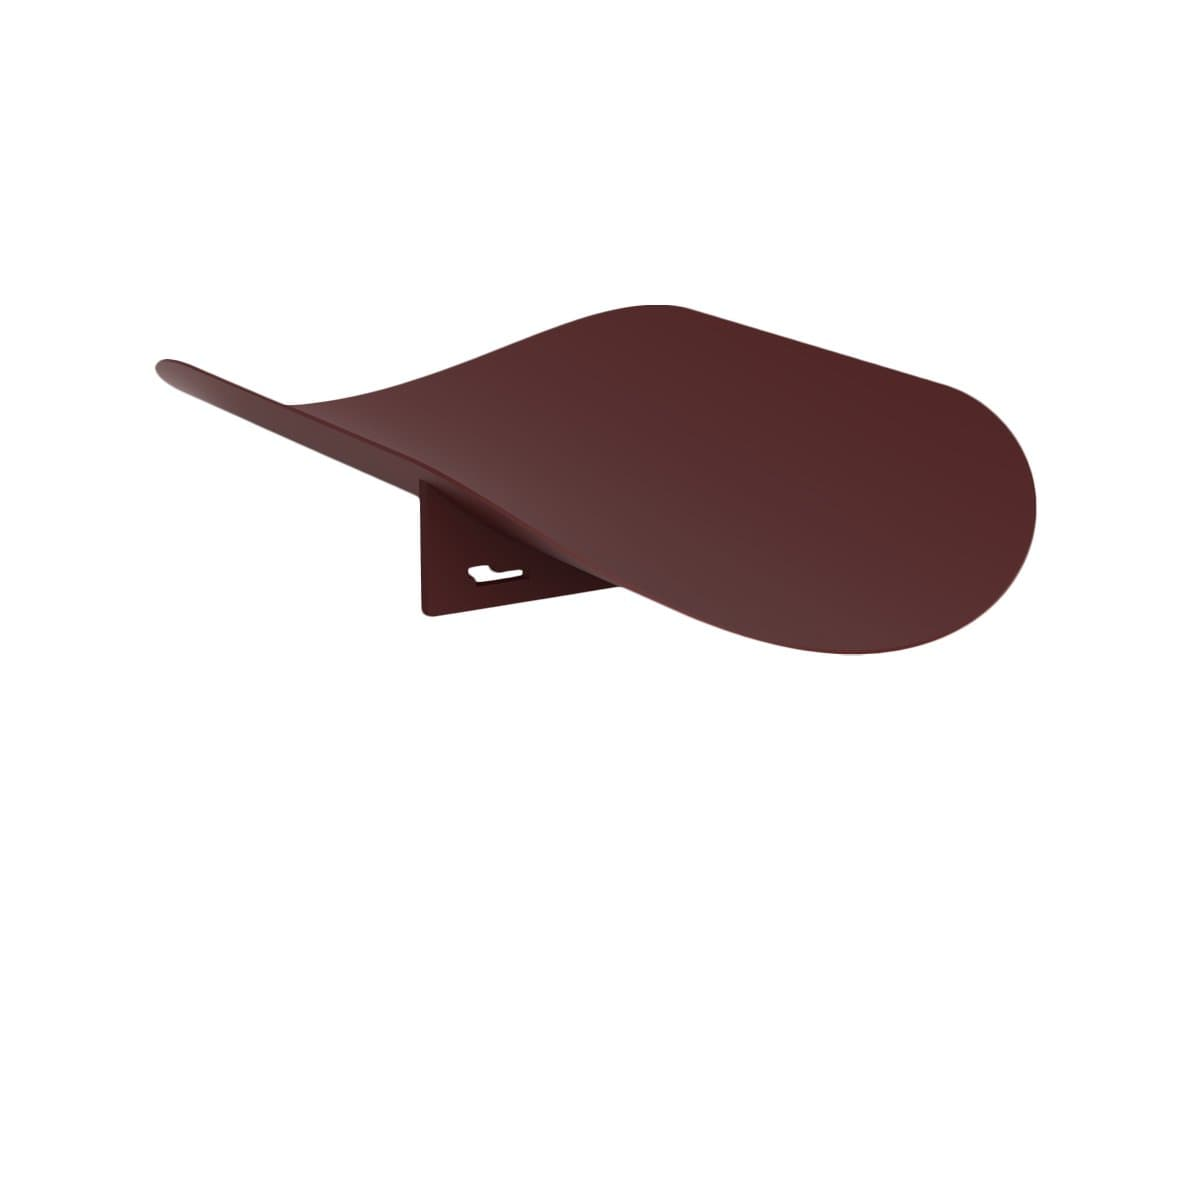 Hue Minimal Decorative Objects Leaf Bordeaux Oval Tray